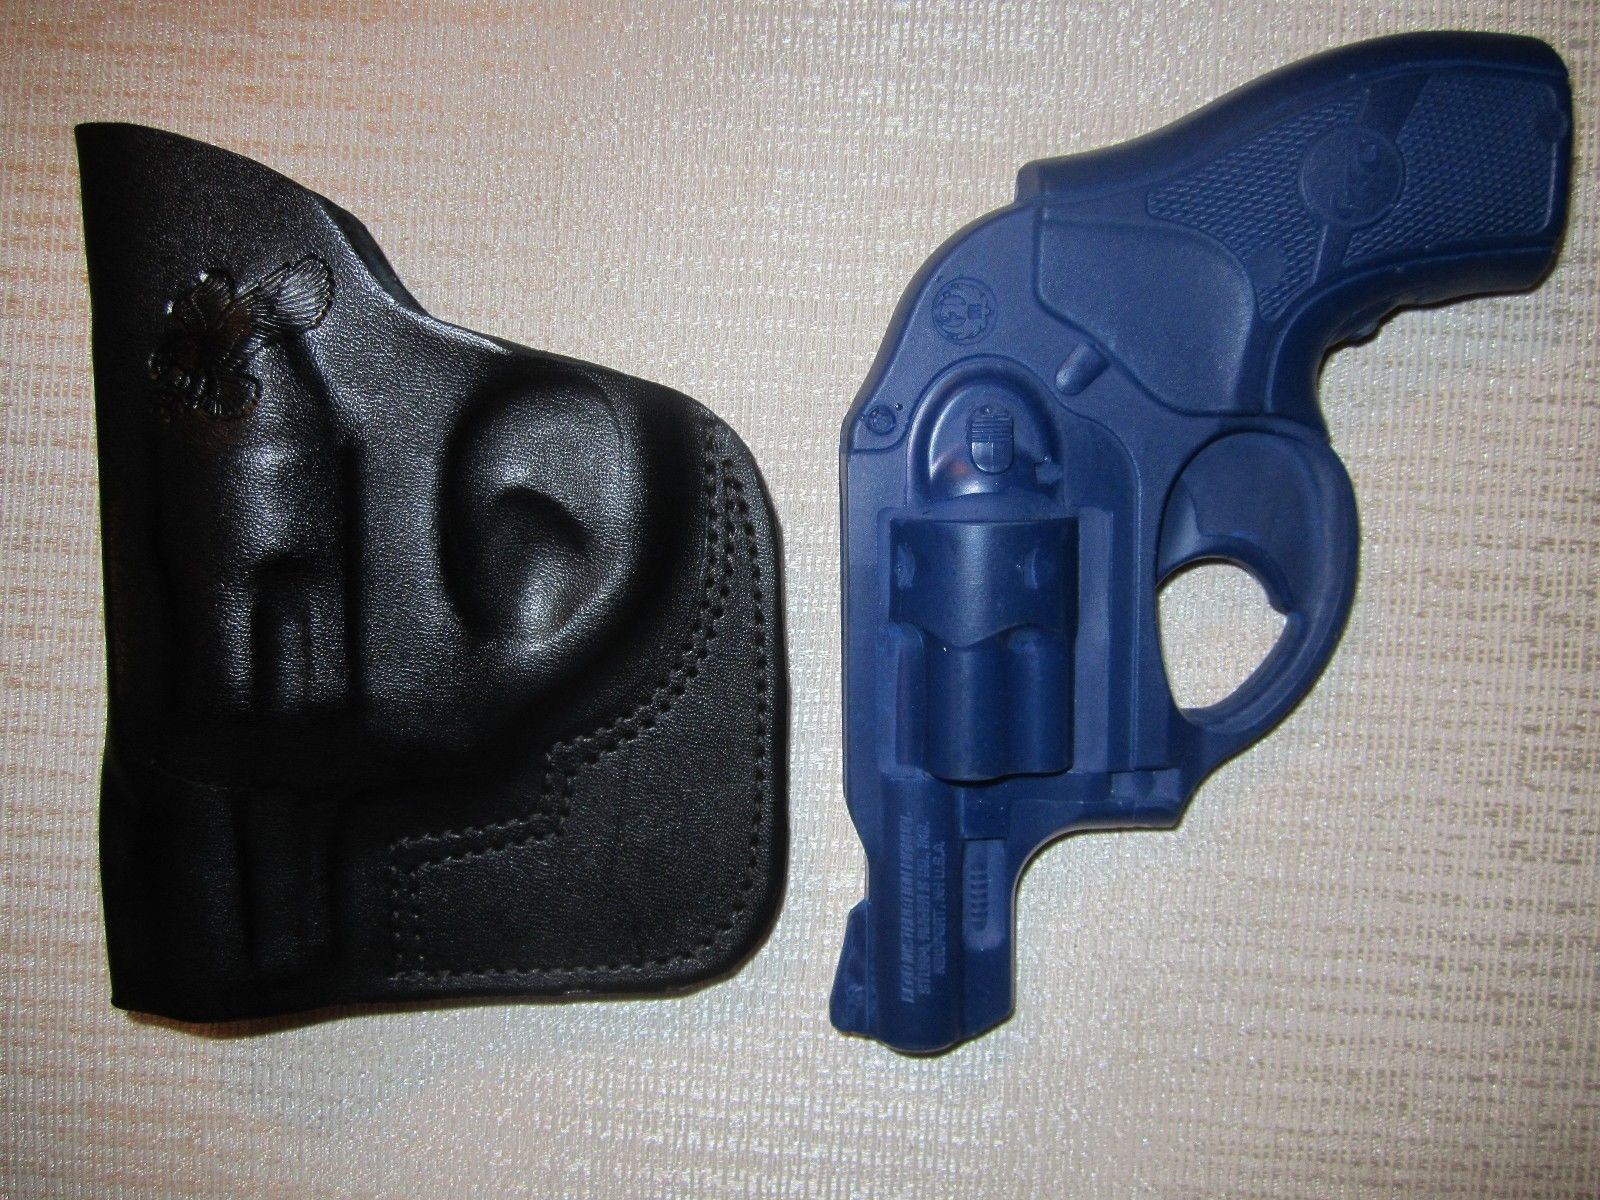 ... Ruger LCR with CT laser grip laser, IWB & POCKET HOLSTER, right hand